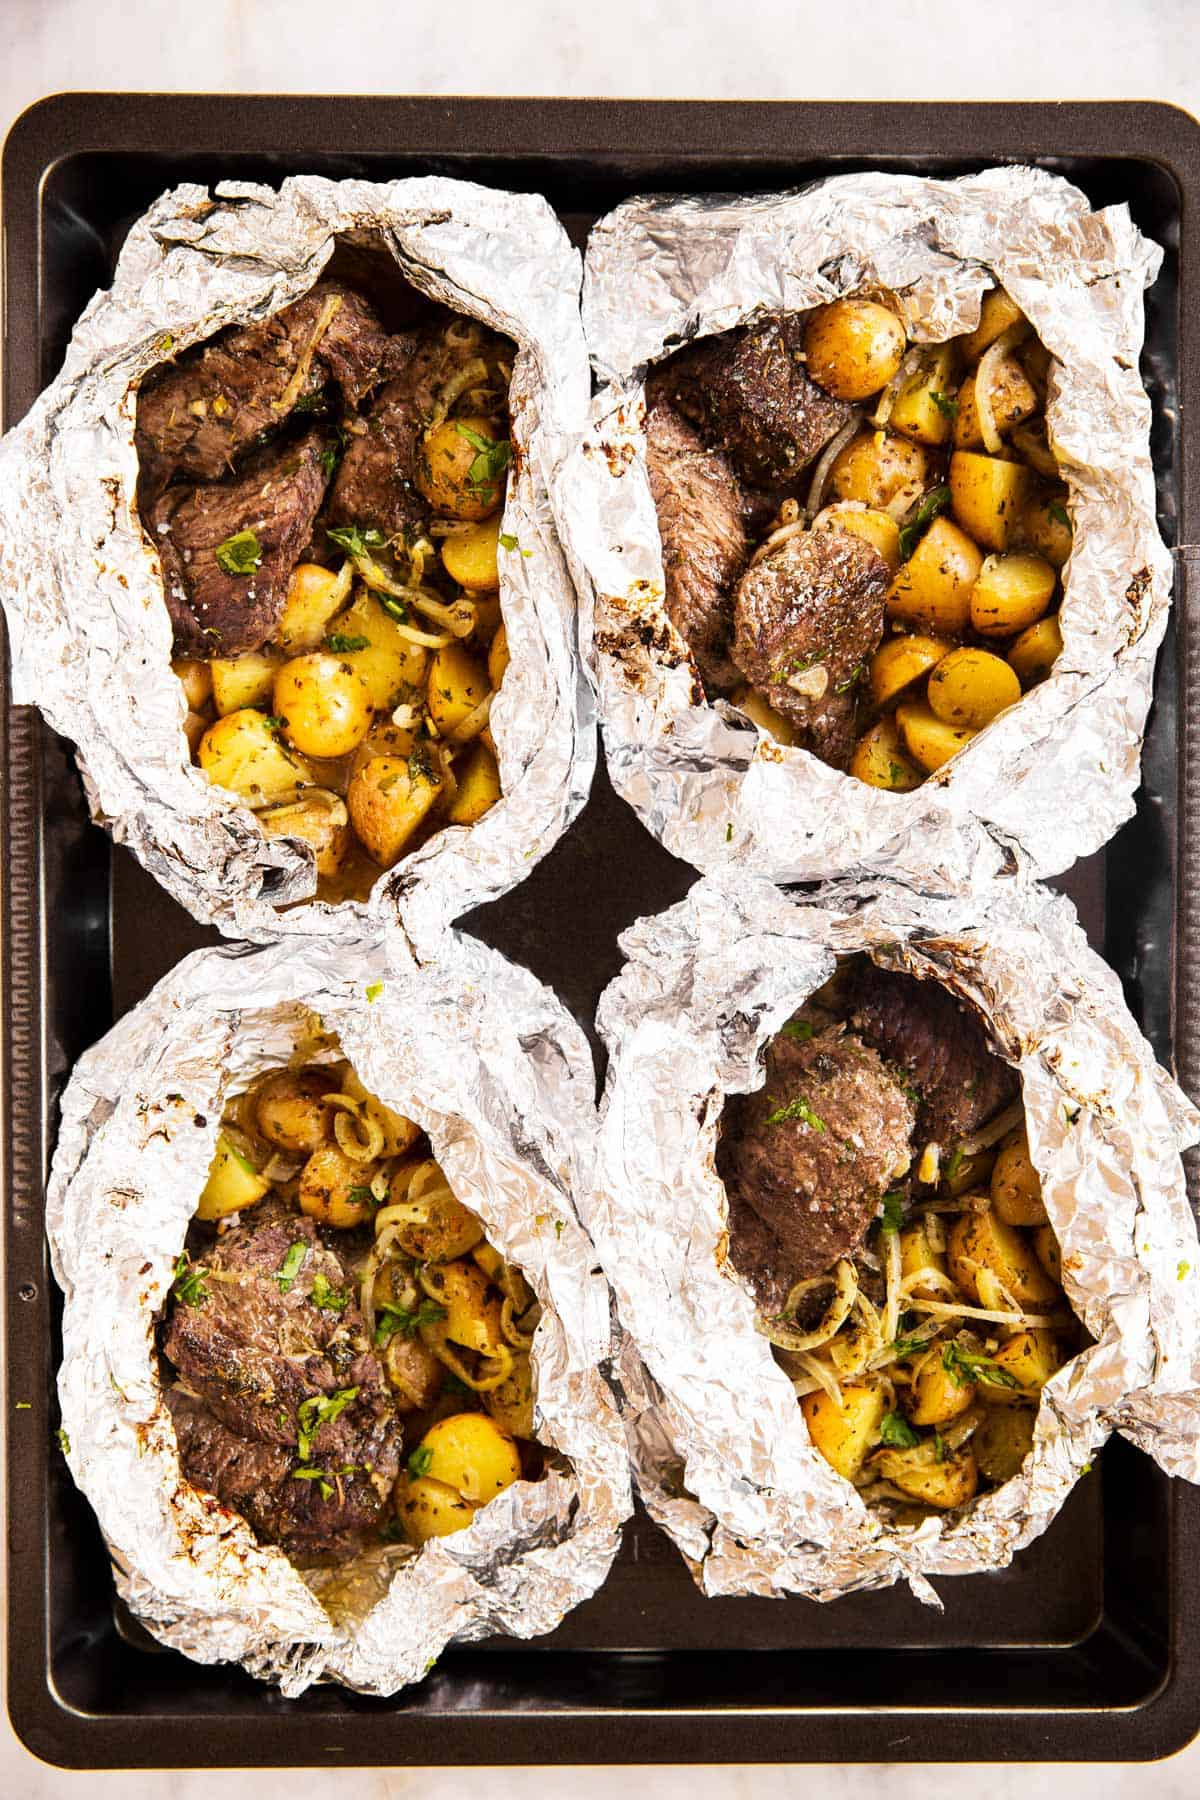 overhead view of four opened steak and potato foil packets on black sheet pan